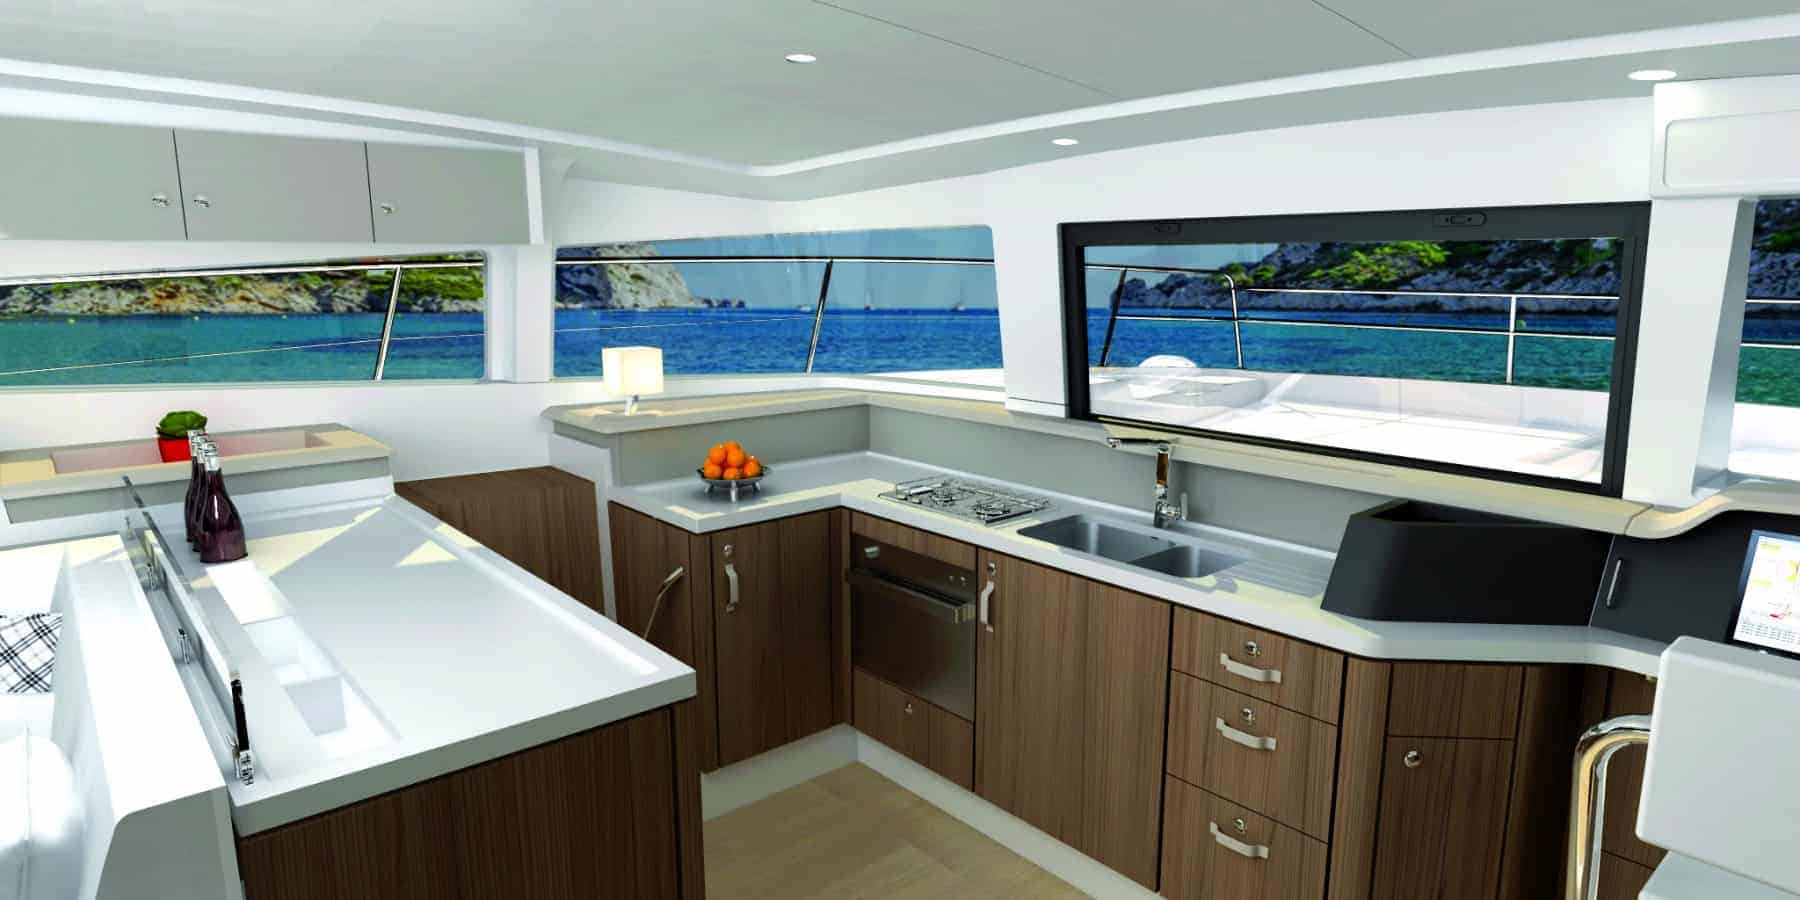 Animated view of the galley with wooden interior of the Bali 4.3 MY Revolutionary